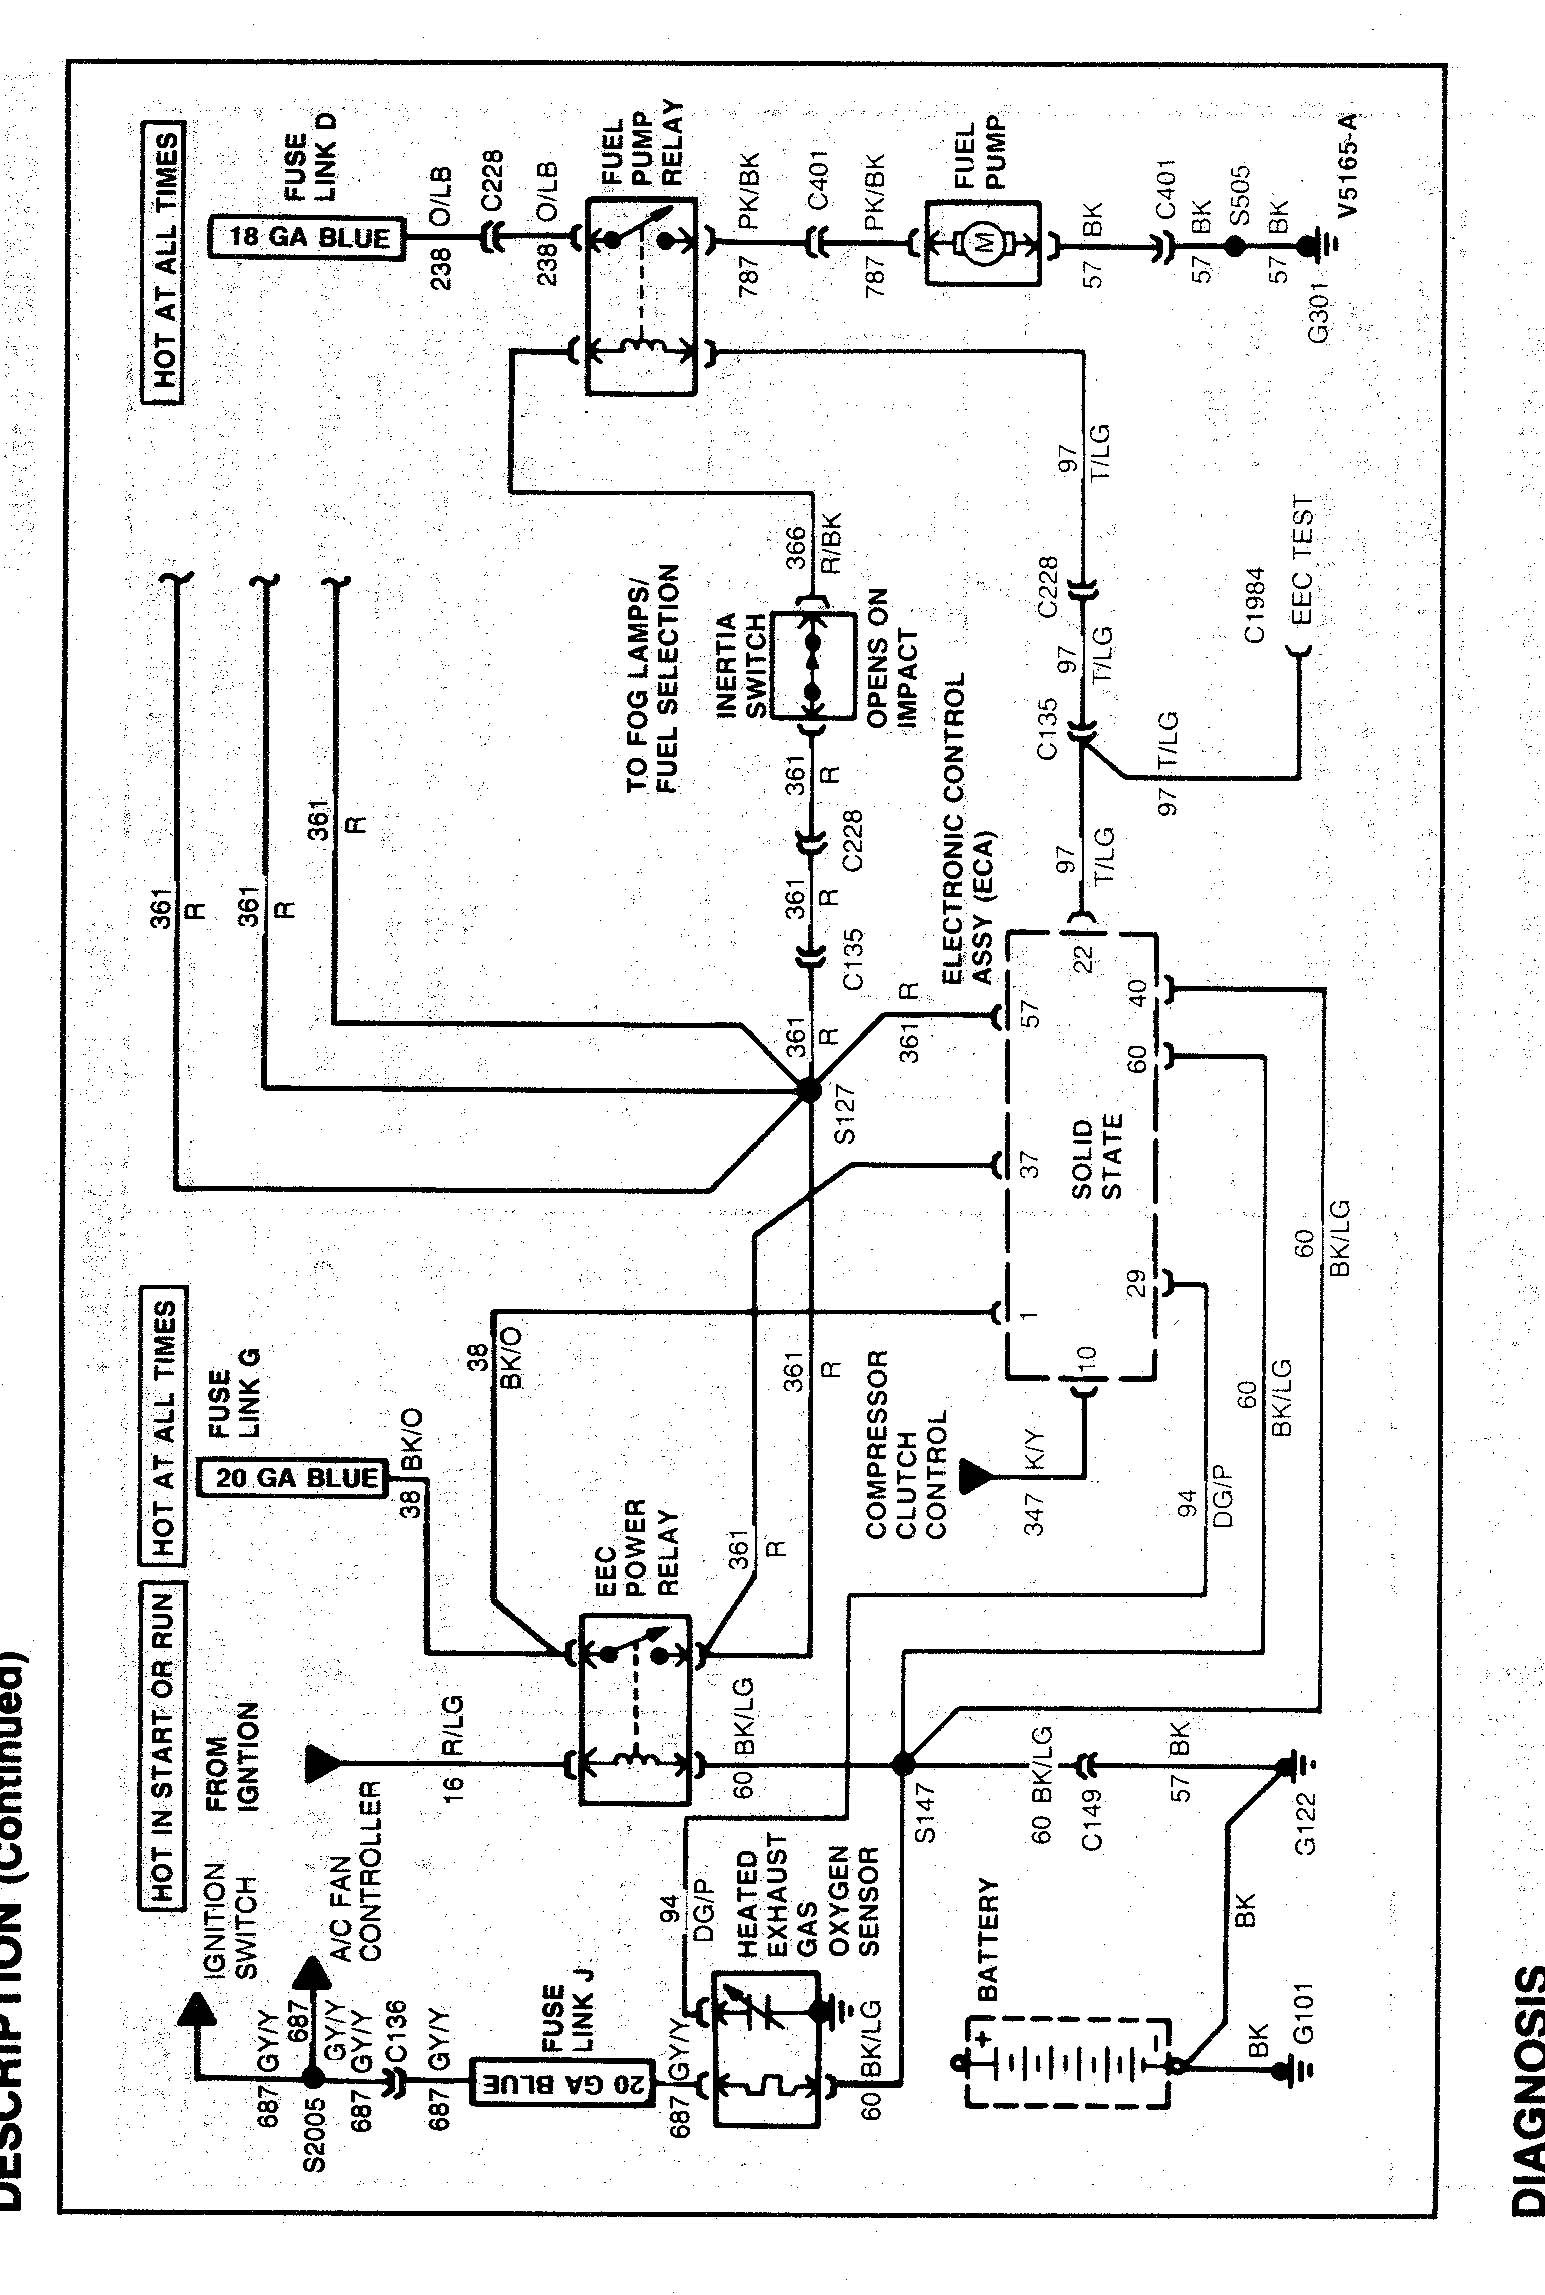 1991 f150 fuel pump wiring diagram